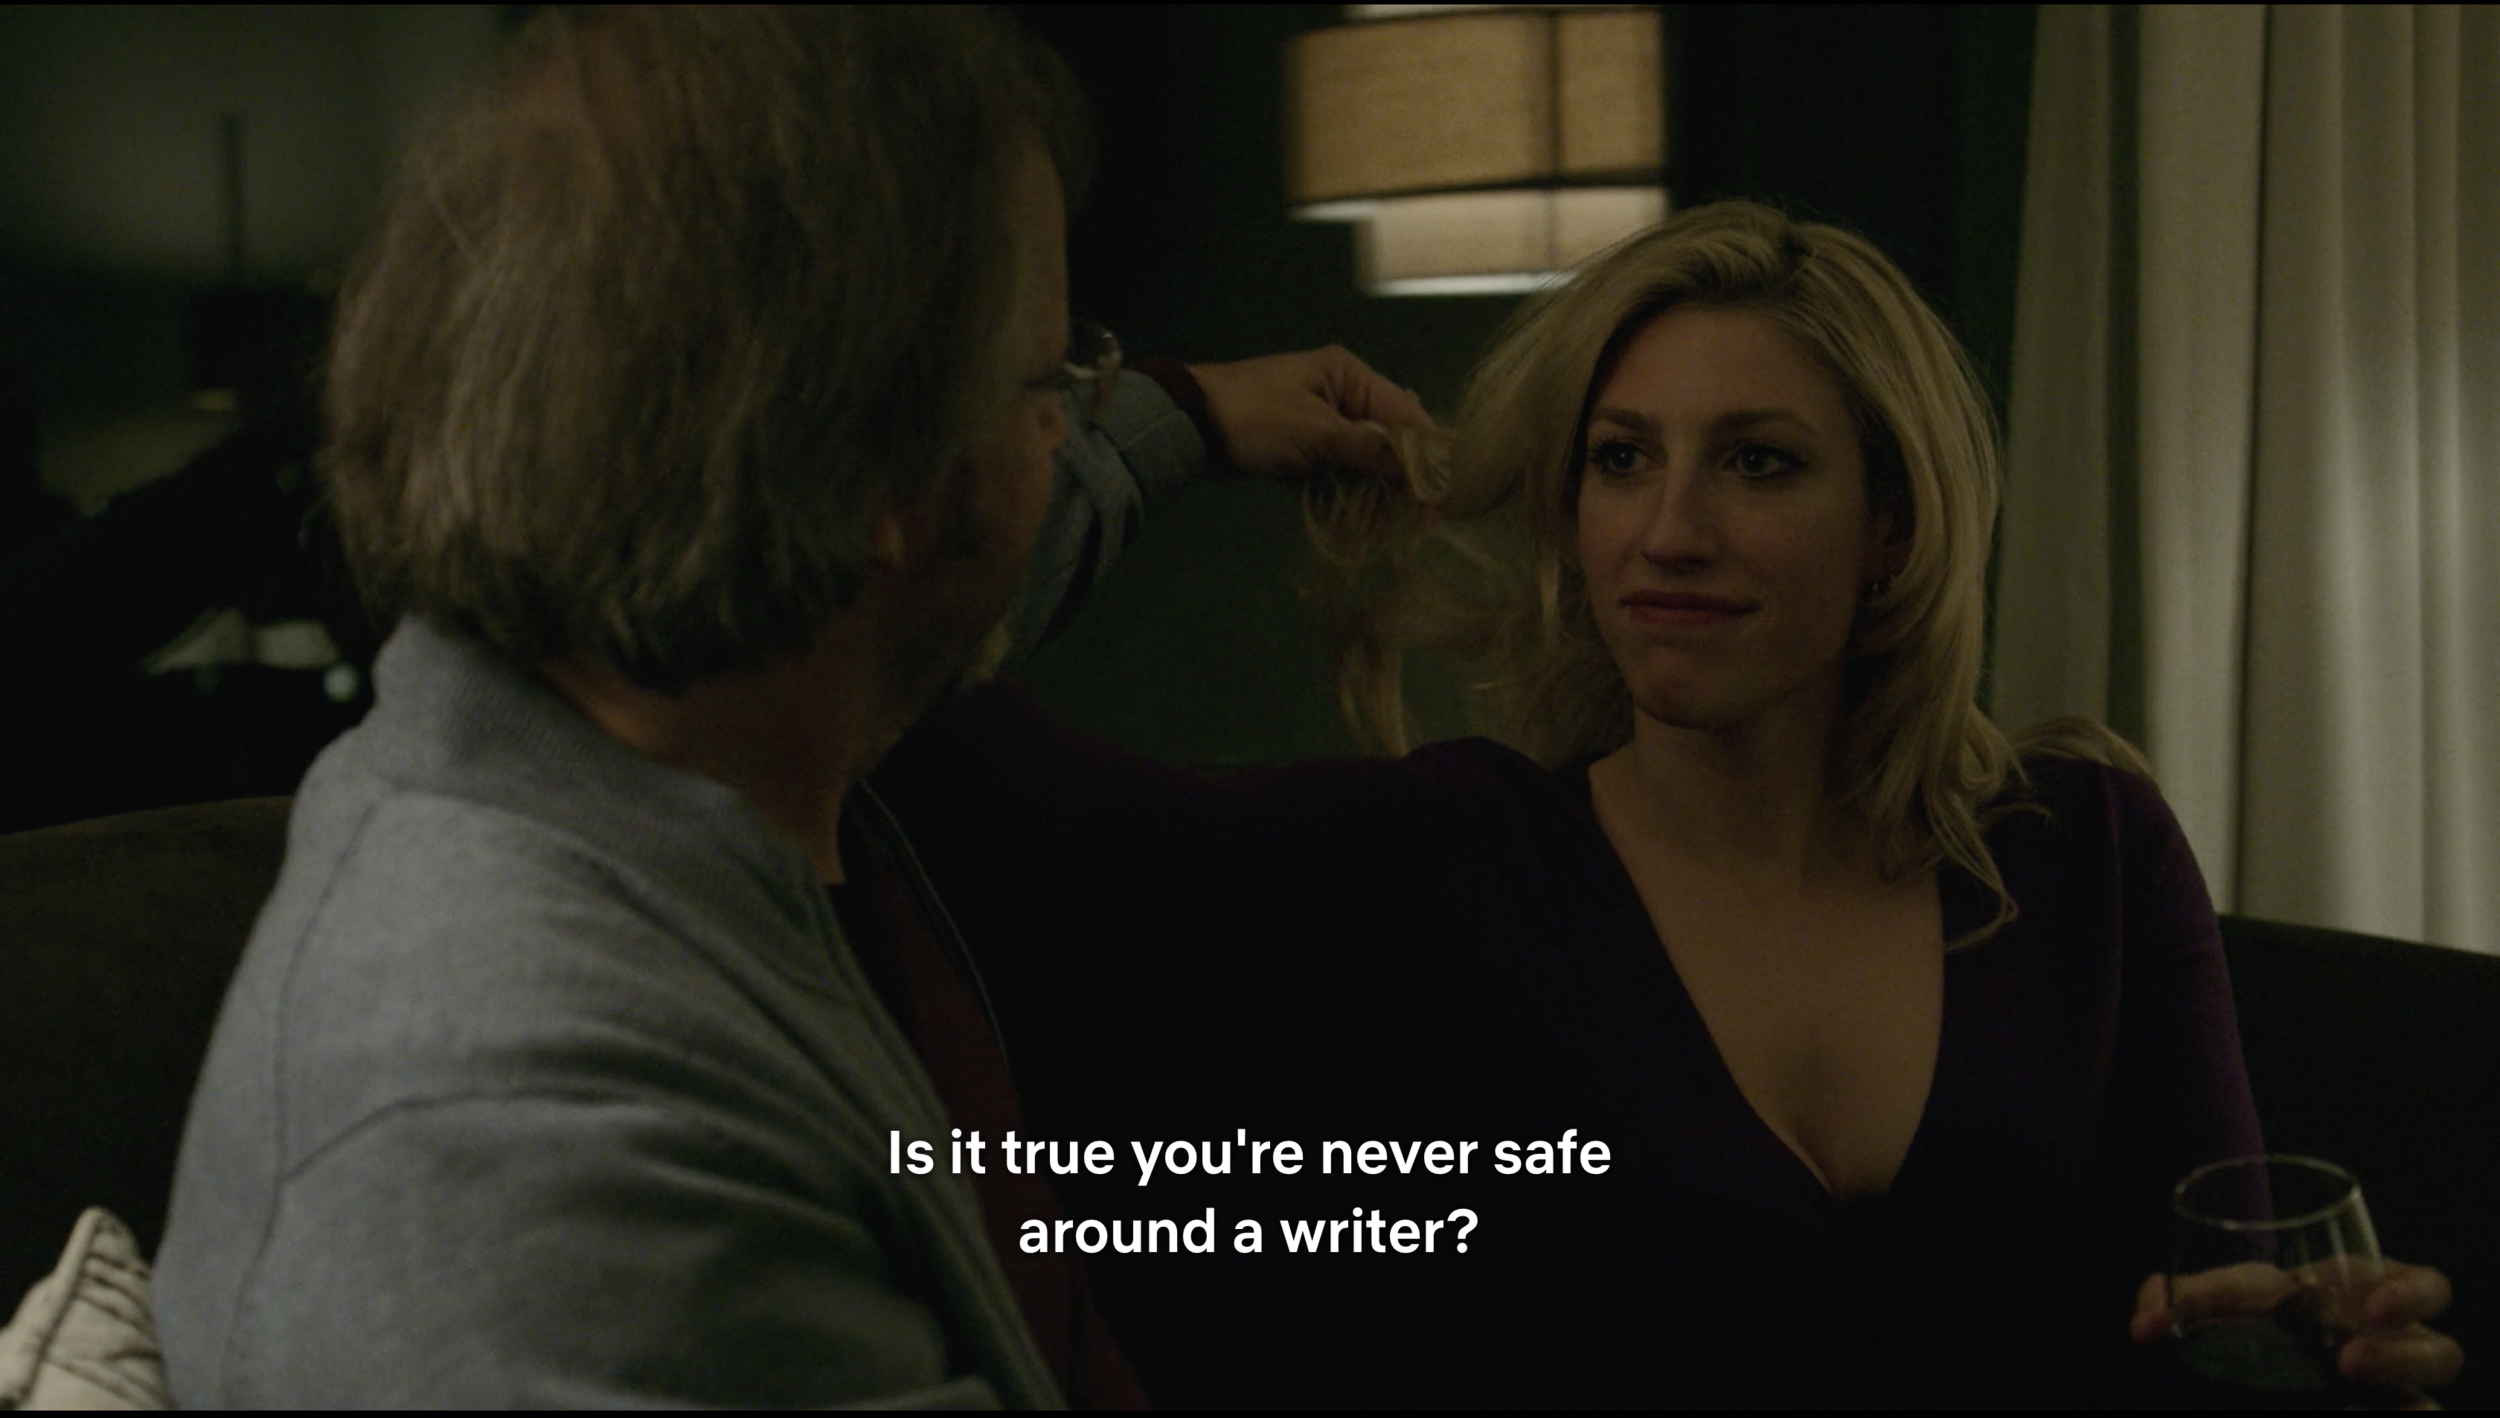 """Sex worker and writer Sally (Karley Sciortino of  VICE's Slutever ) with a client/potential subject in the  Easy  episode  """"Side Hustle""""  (s2e3). When we were dating, Galen asked me to watch episodes of  Easy  that paralleled our relationship. To me, his selection of """"Side Hustle,"""" """"Private Eyes,"""" and """"Art and Life"""" indicates that he was aware the relationship was going to devolve into this—an article, some play, some performance art, nothing more.  """"Side Hustle"""" is one of my favorite eps because it's well-observed and painfully accurate, and, TBH, I'm mildly jealous that Karley Sciortino and series creator-writer-director Joe Swanberg were able to accurately depict the realities of not just the gig economy but certain forms of outcall sex work (especially in relation to its emotional and therapeutic aspects). What they accomplished in a single episode is what I'd hoped to accomplish with my web series,   The Business  . At any rate…I chose this still because when you're fucking and writing about someone, it's difficult to turn off that journalist in you, even in your more intimate moments, and I found that I couldn't maintain that boundary around Galen."""